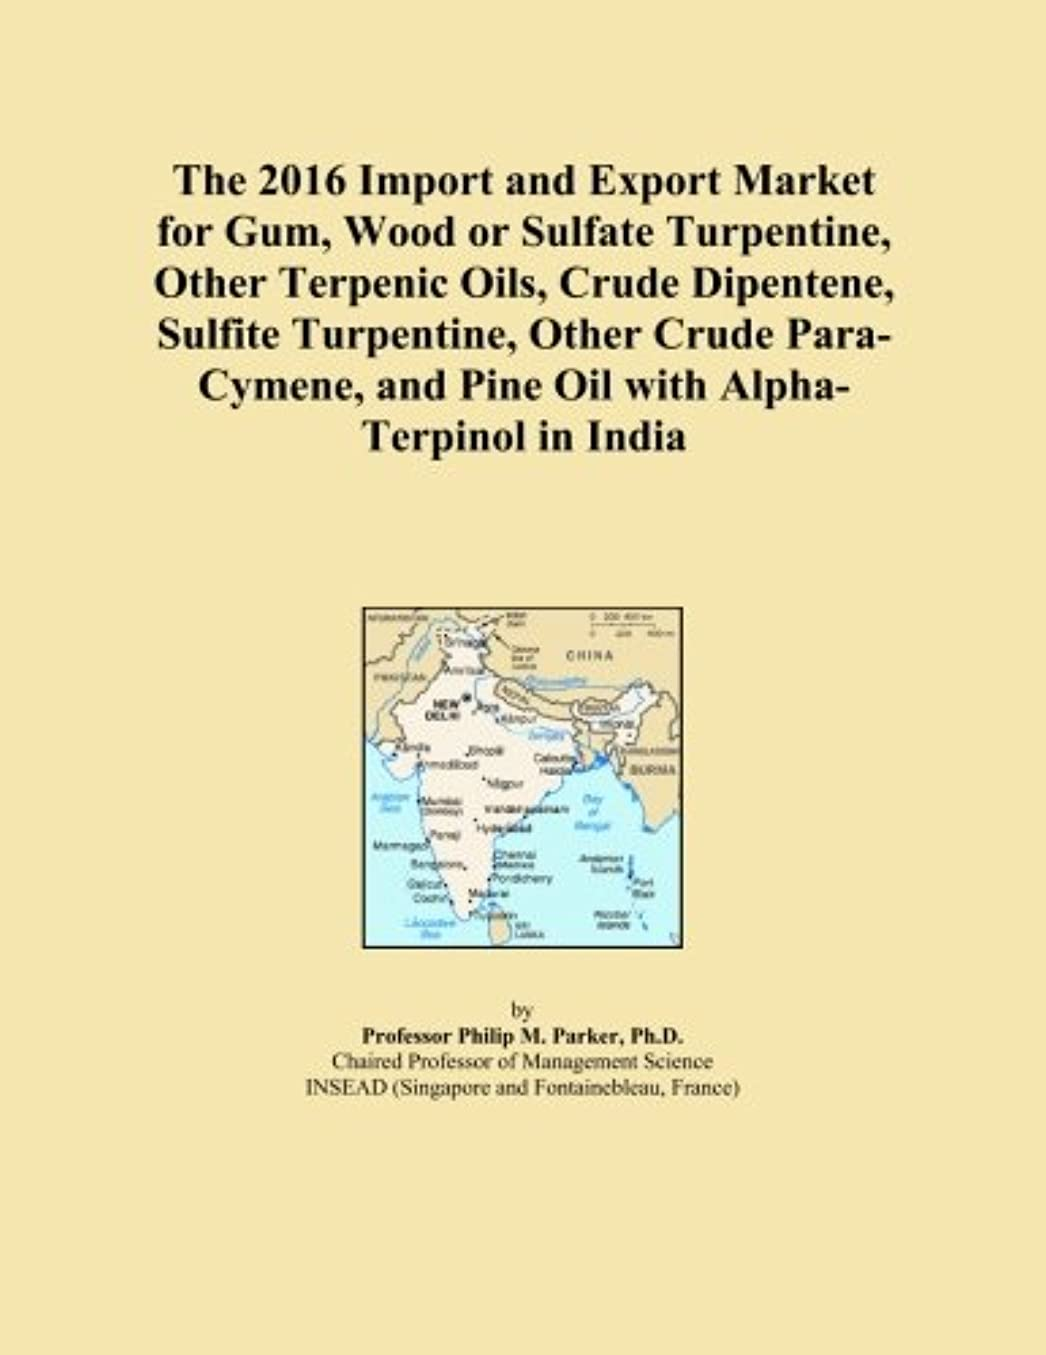 またはどちらか噛む器用The 2016 Import and Export Market for Gum, Wood or Sulfate Turpentine, Other Terpenic Oils, Crude Dipentene, Sulfite Turpentine, Other Crude Para-Cymene, and Pine Oil with Alpha-Terpinol in India